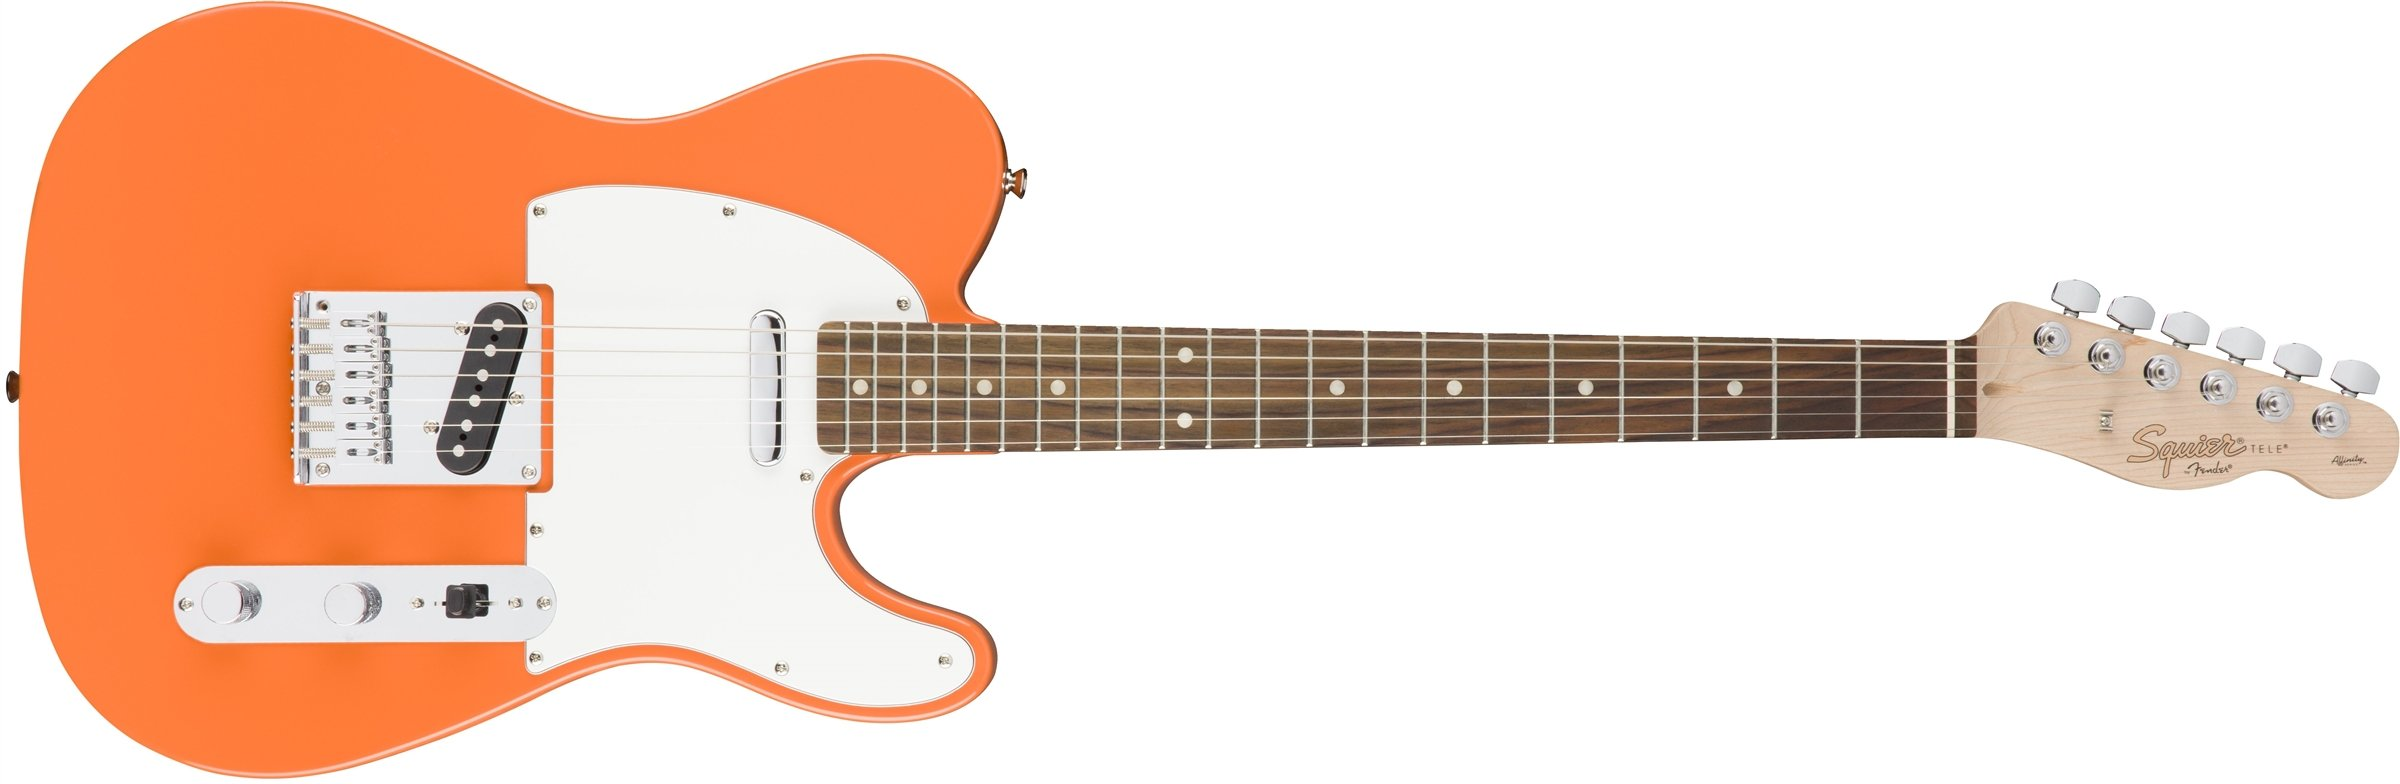 Squier by Fender Affinity Telecaster Beginner Electric Guitar - Rosewood Fingerboard, Competition Orange